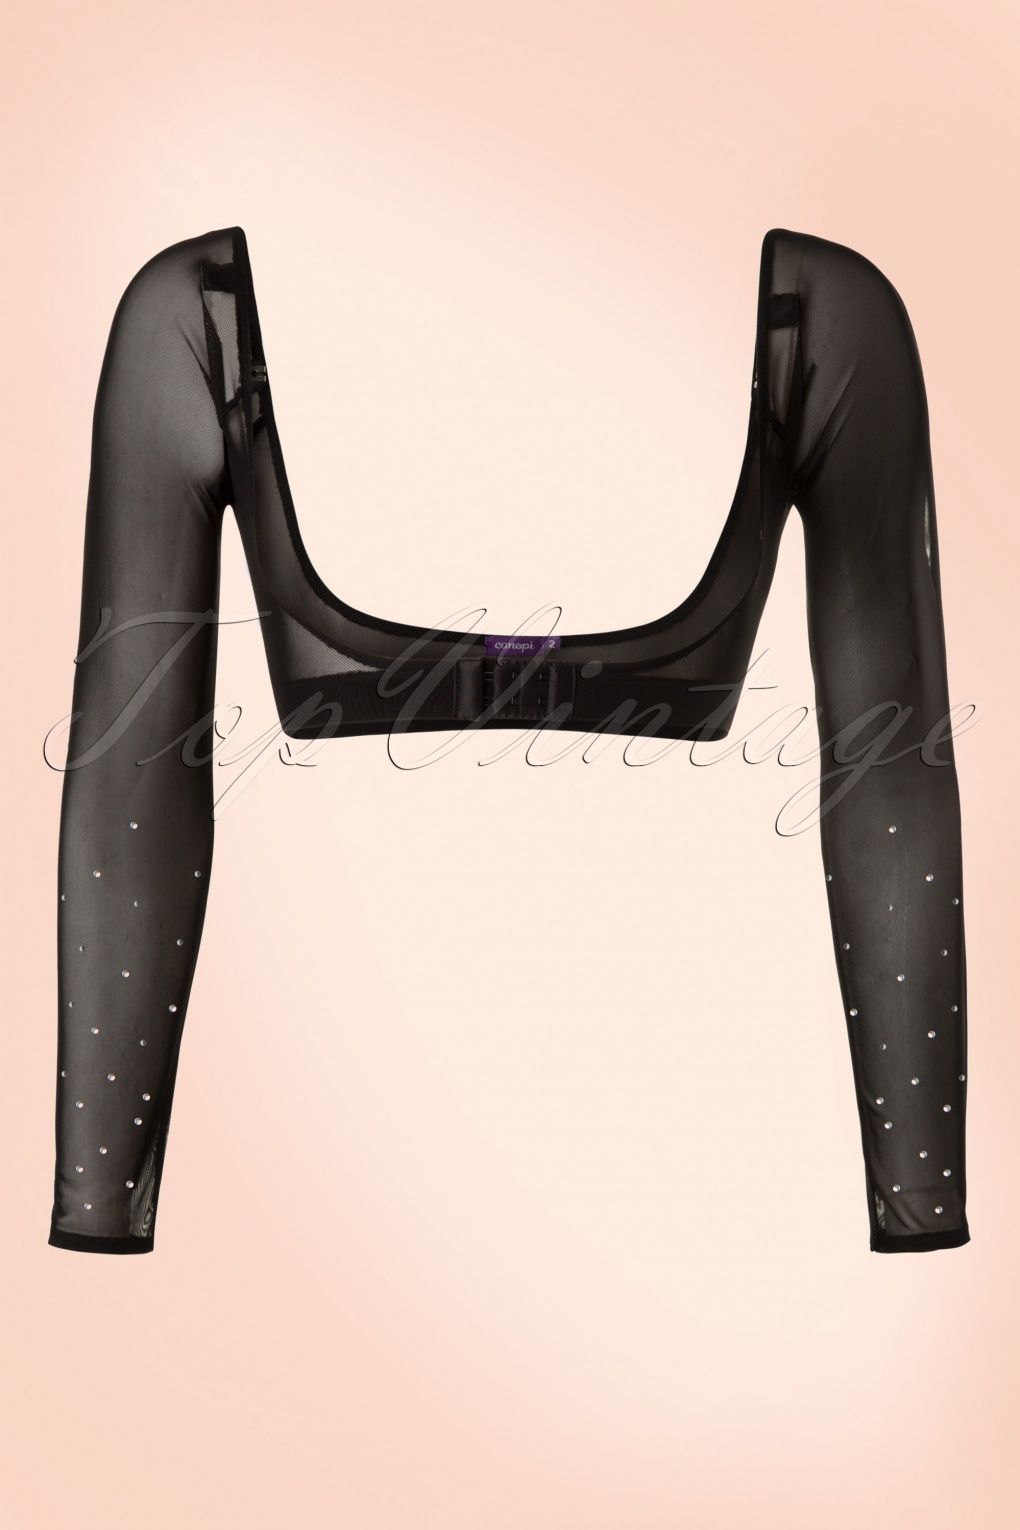 1920s Style Blouses, Shirts, Sweaters, Cardigans Jolie Long Crystal Mesh Sleeves in Black £53.06 AT vintagedancer.com